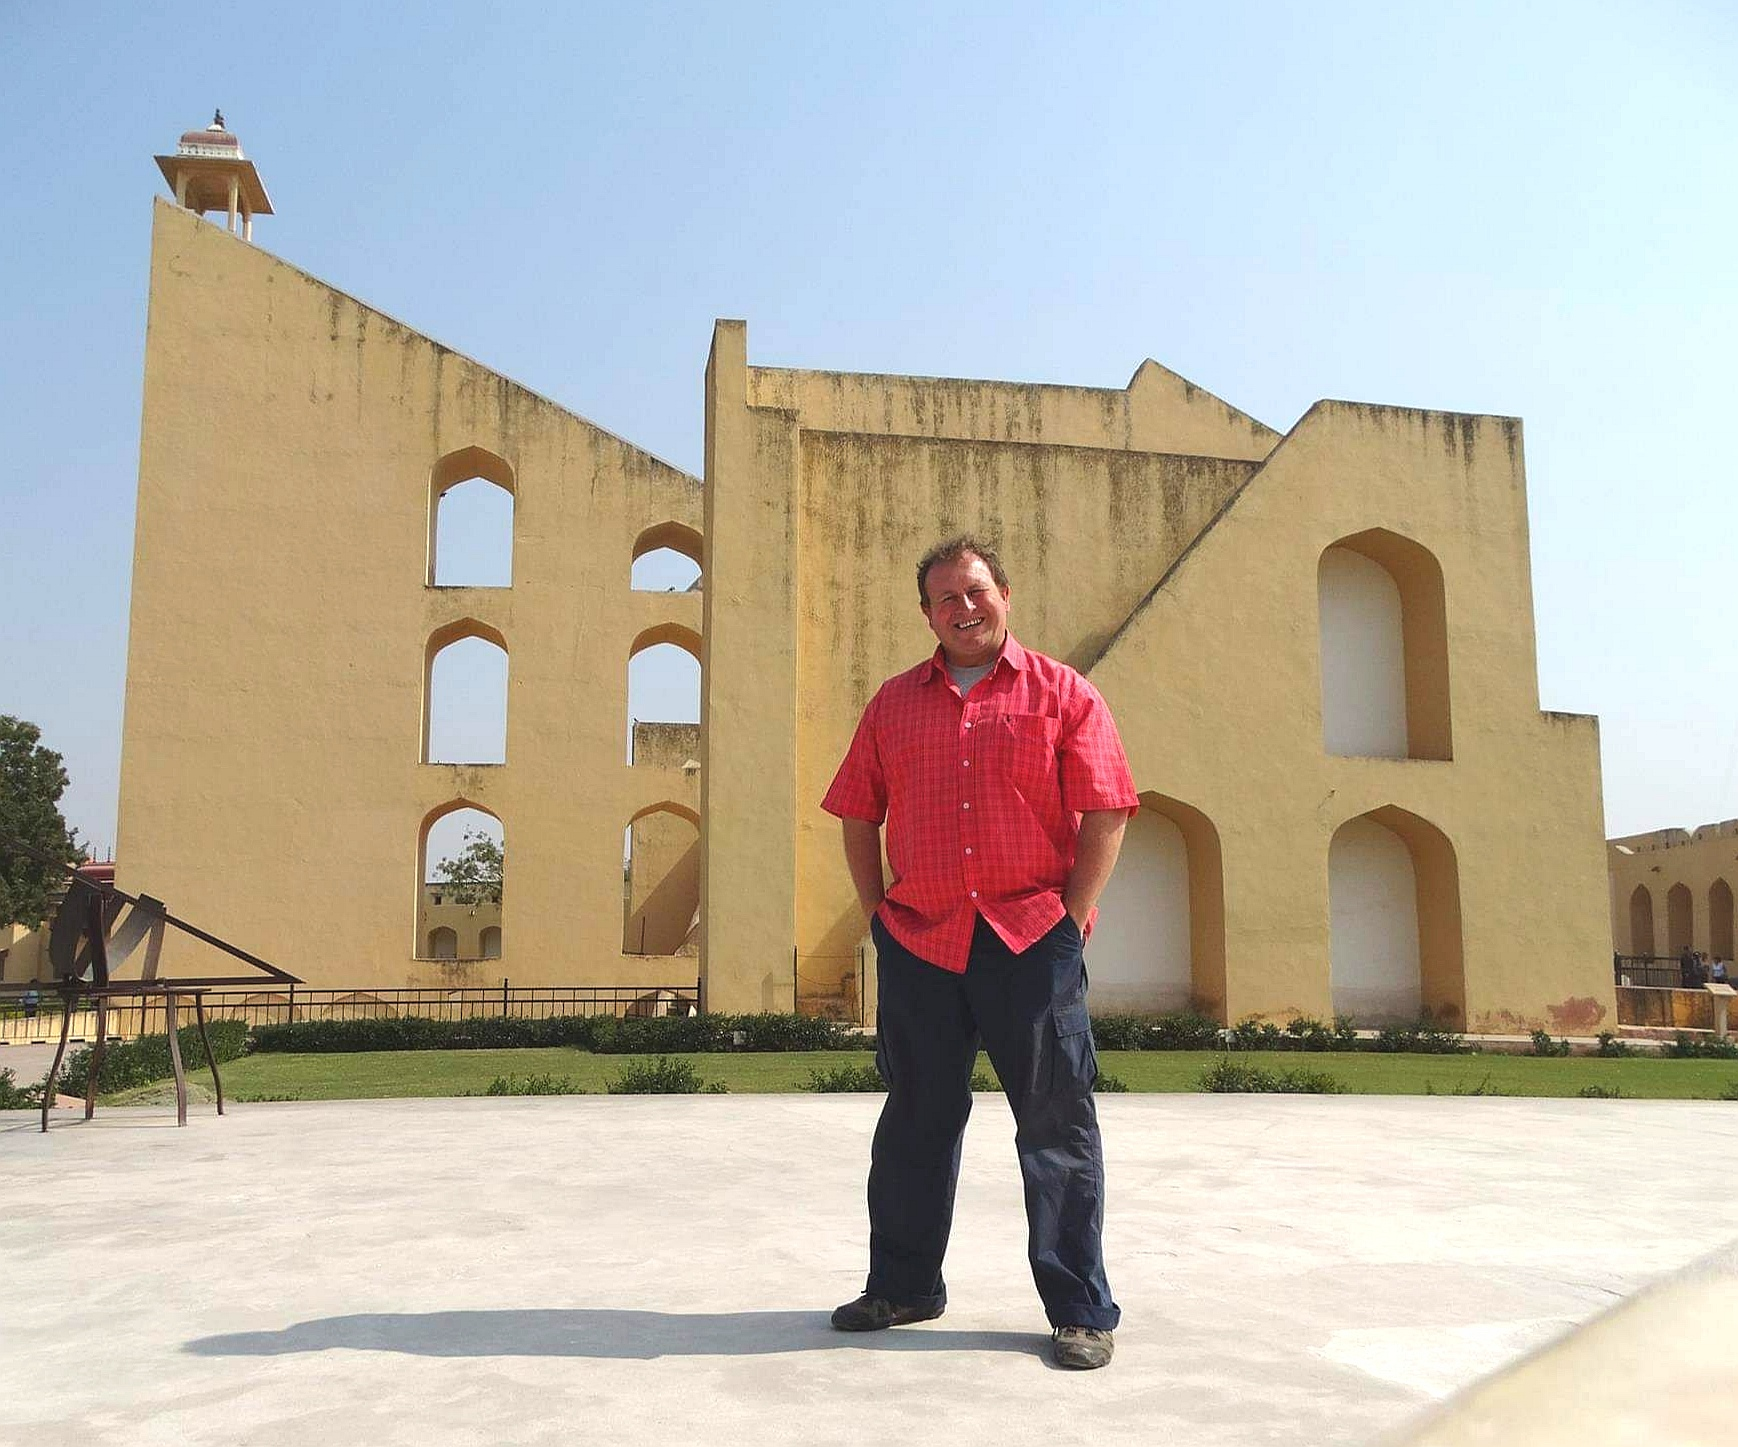 Jaipur, India. Jantar Mantar is an astronomical observation site built in the early 18th century